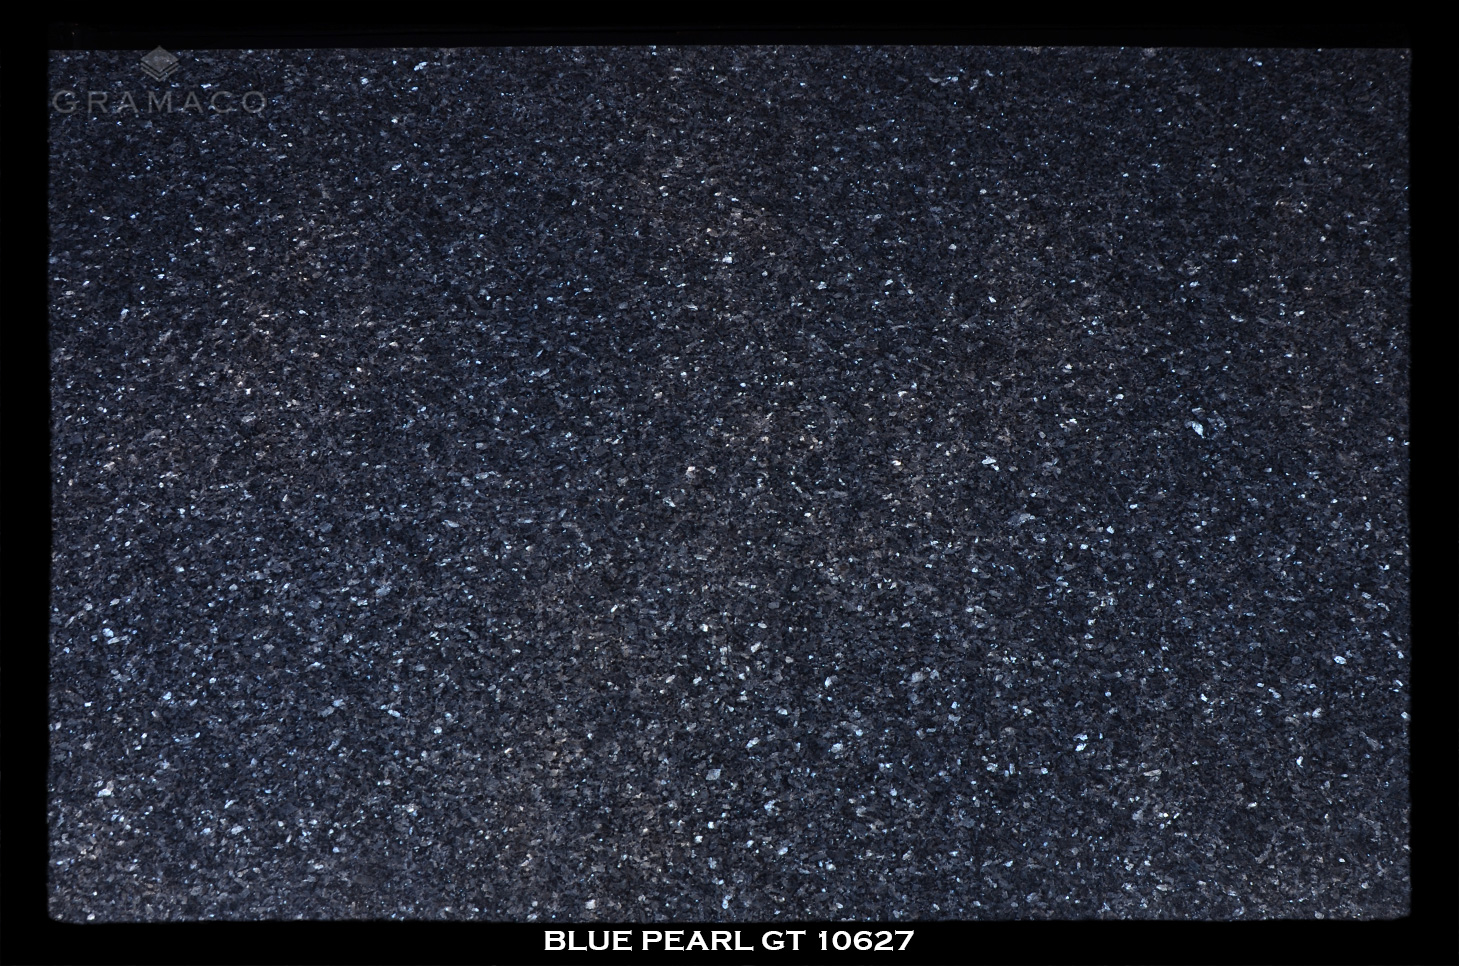 BLUE-PEARL-GE-10627---FULL-SLAB-BLACK